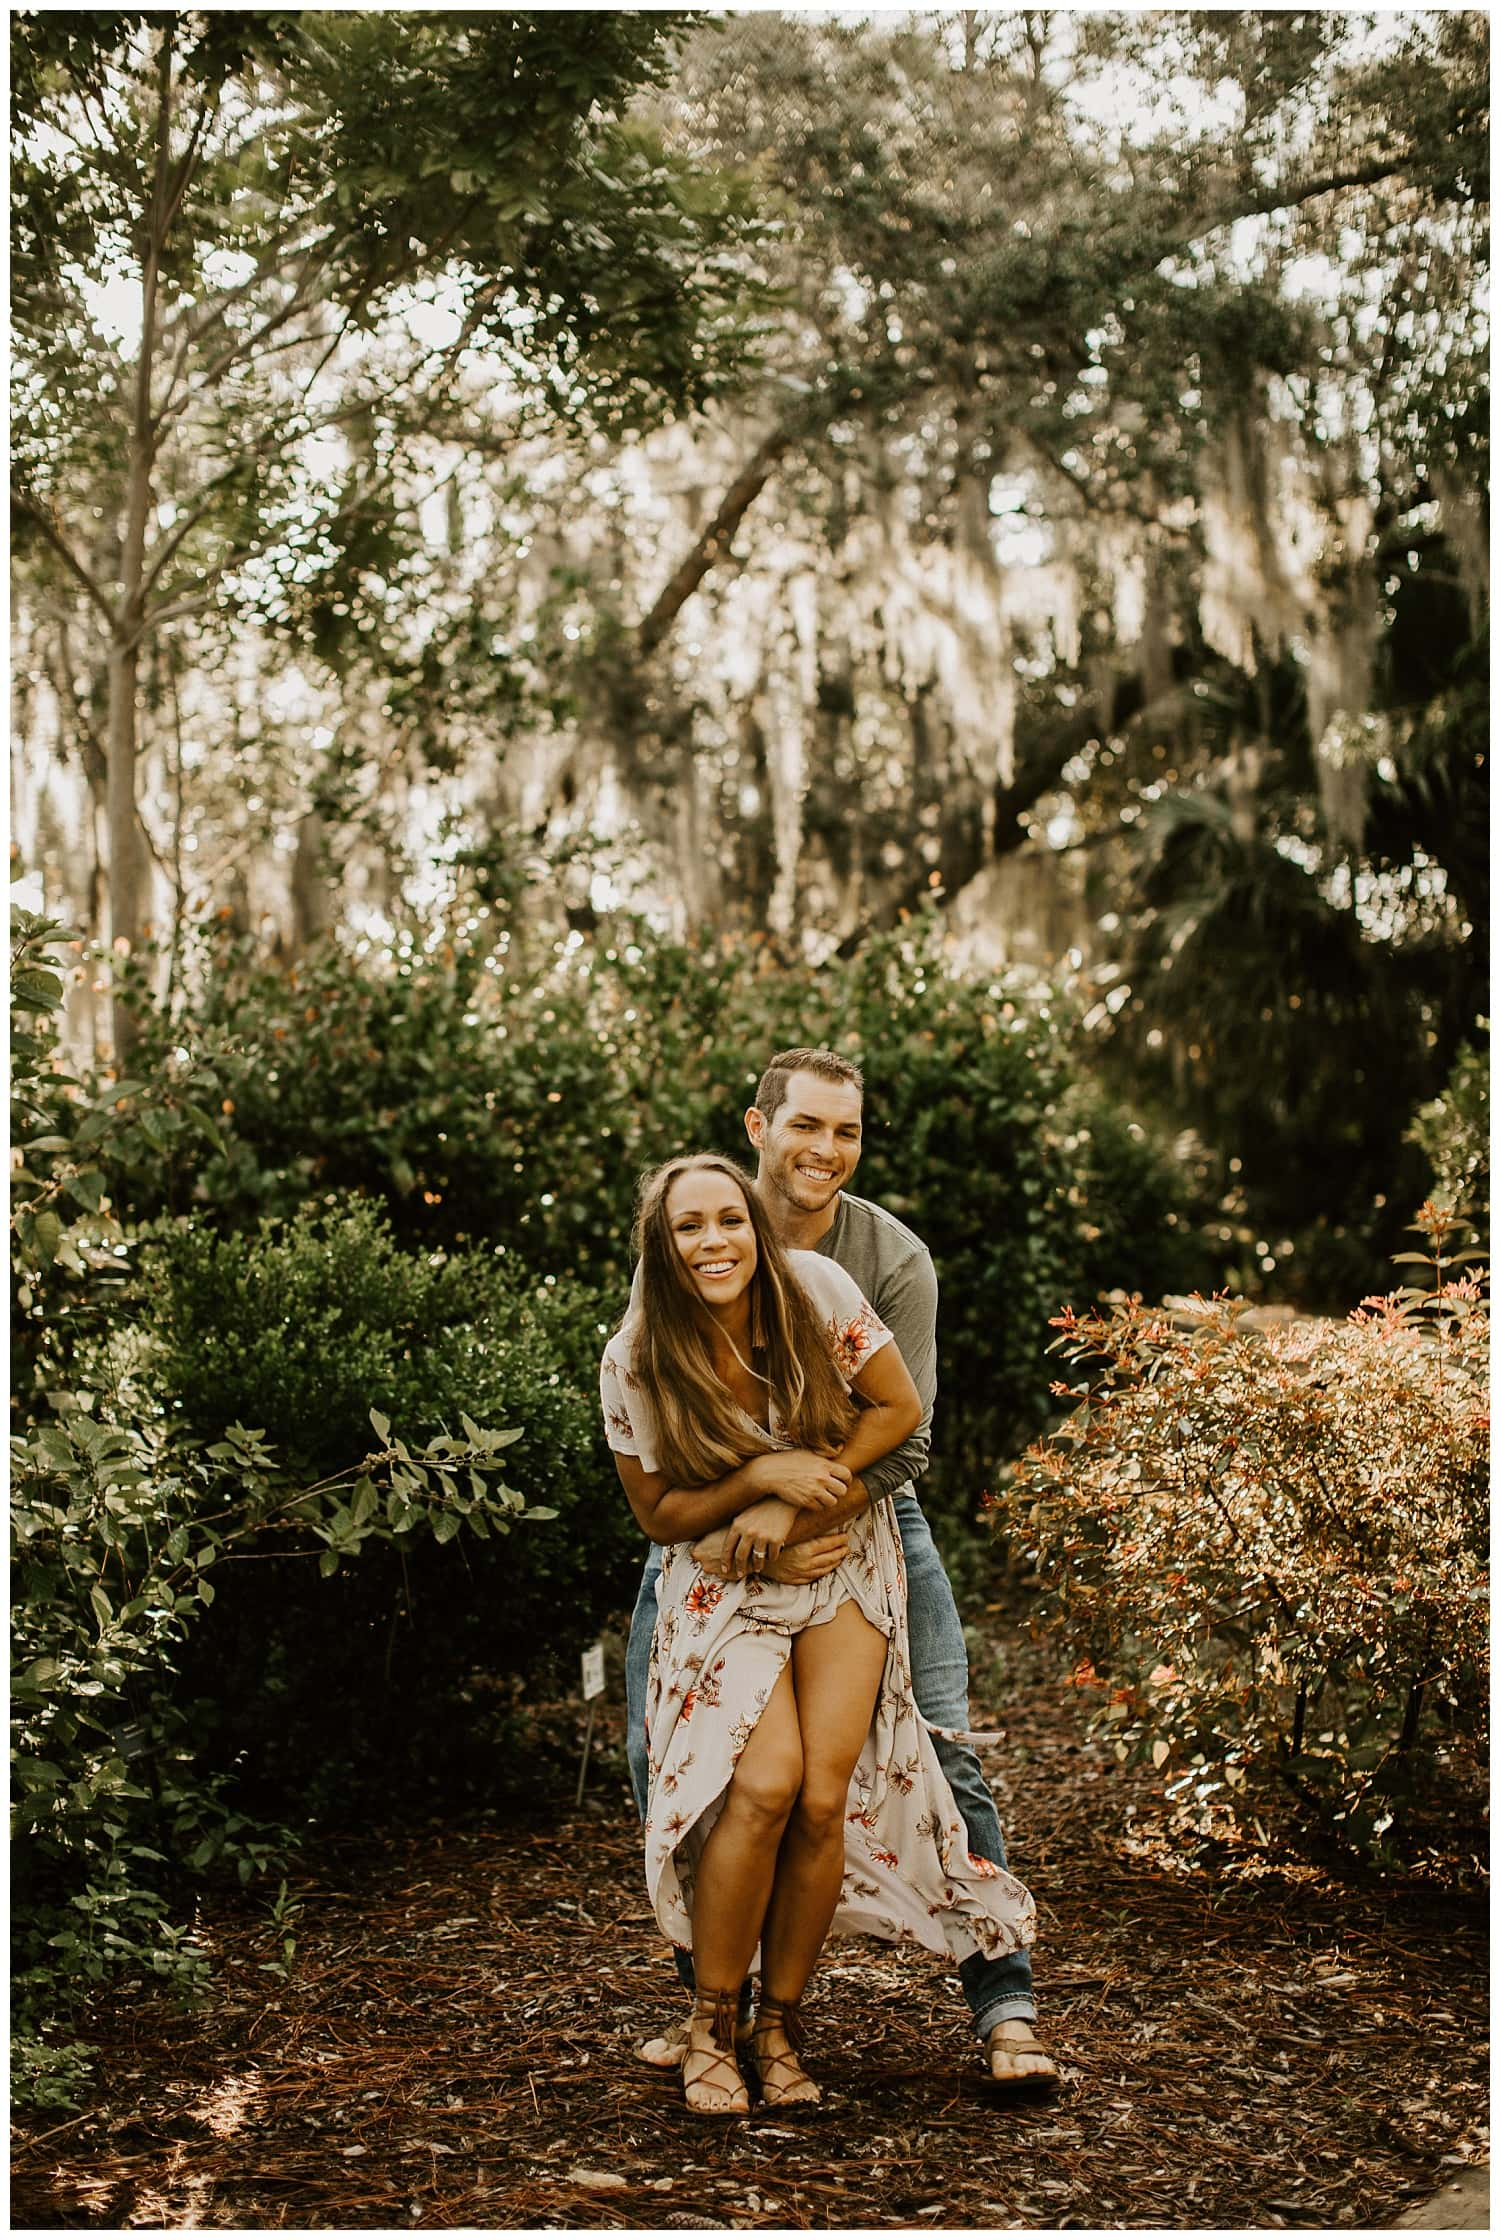 anniversary photos,couples photo session,couples photos,couples photoshoot,palm beach photographer,port saint lucie botanical gardens,port saint lucie photographer,stuart photographer,